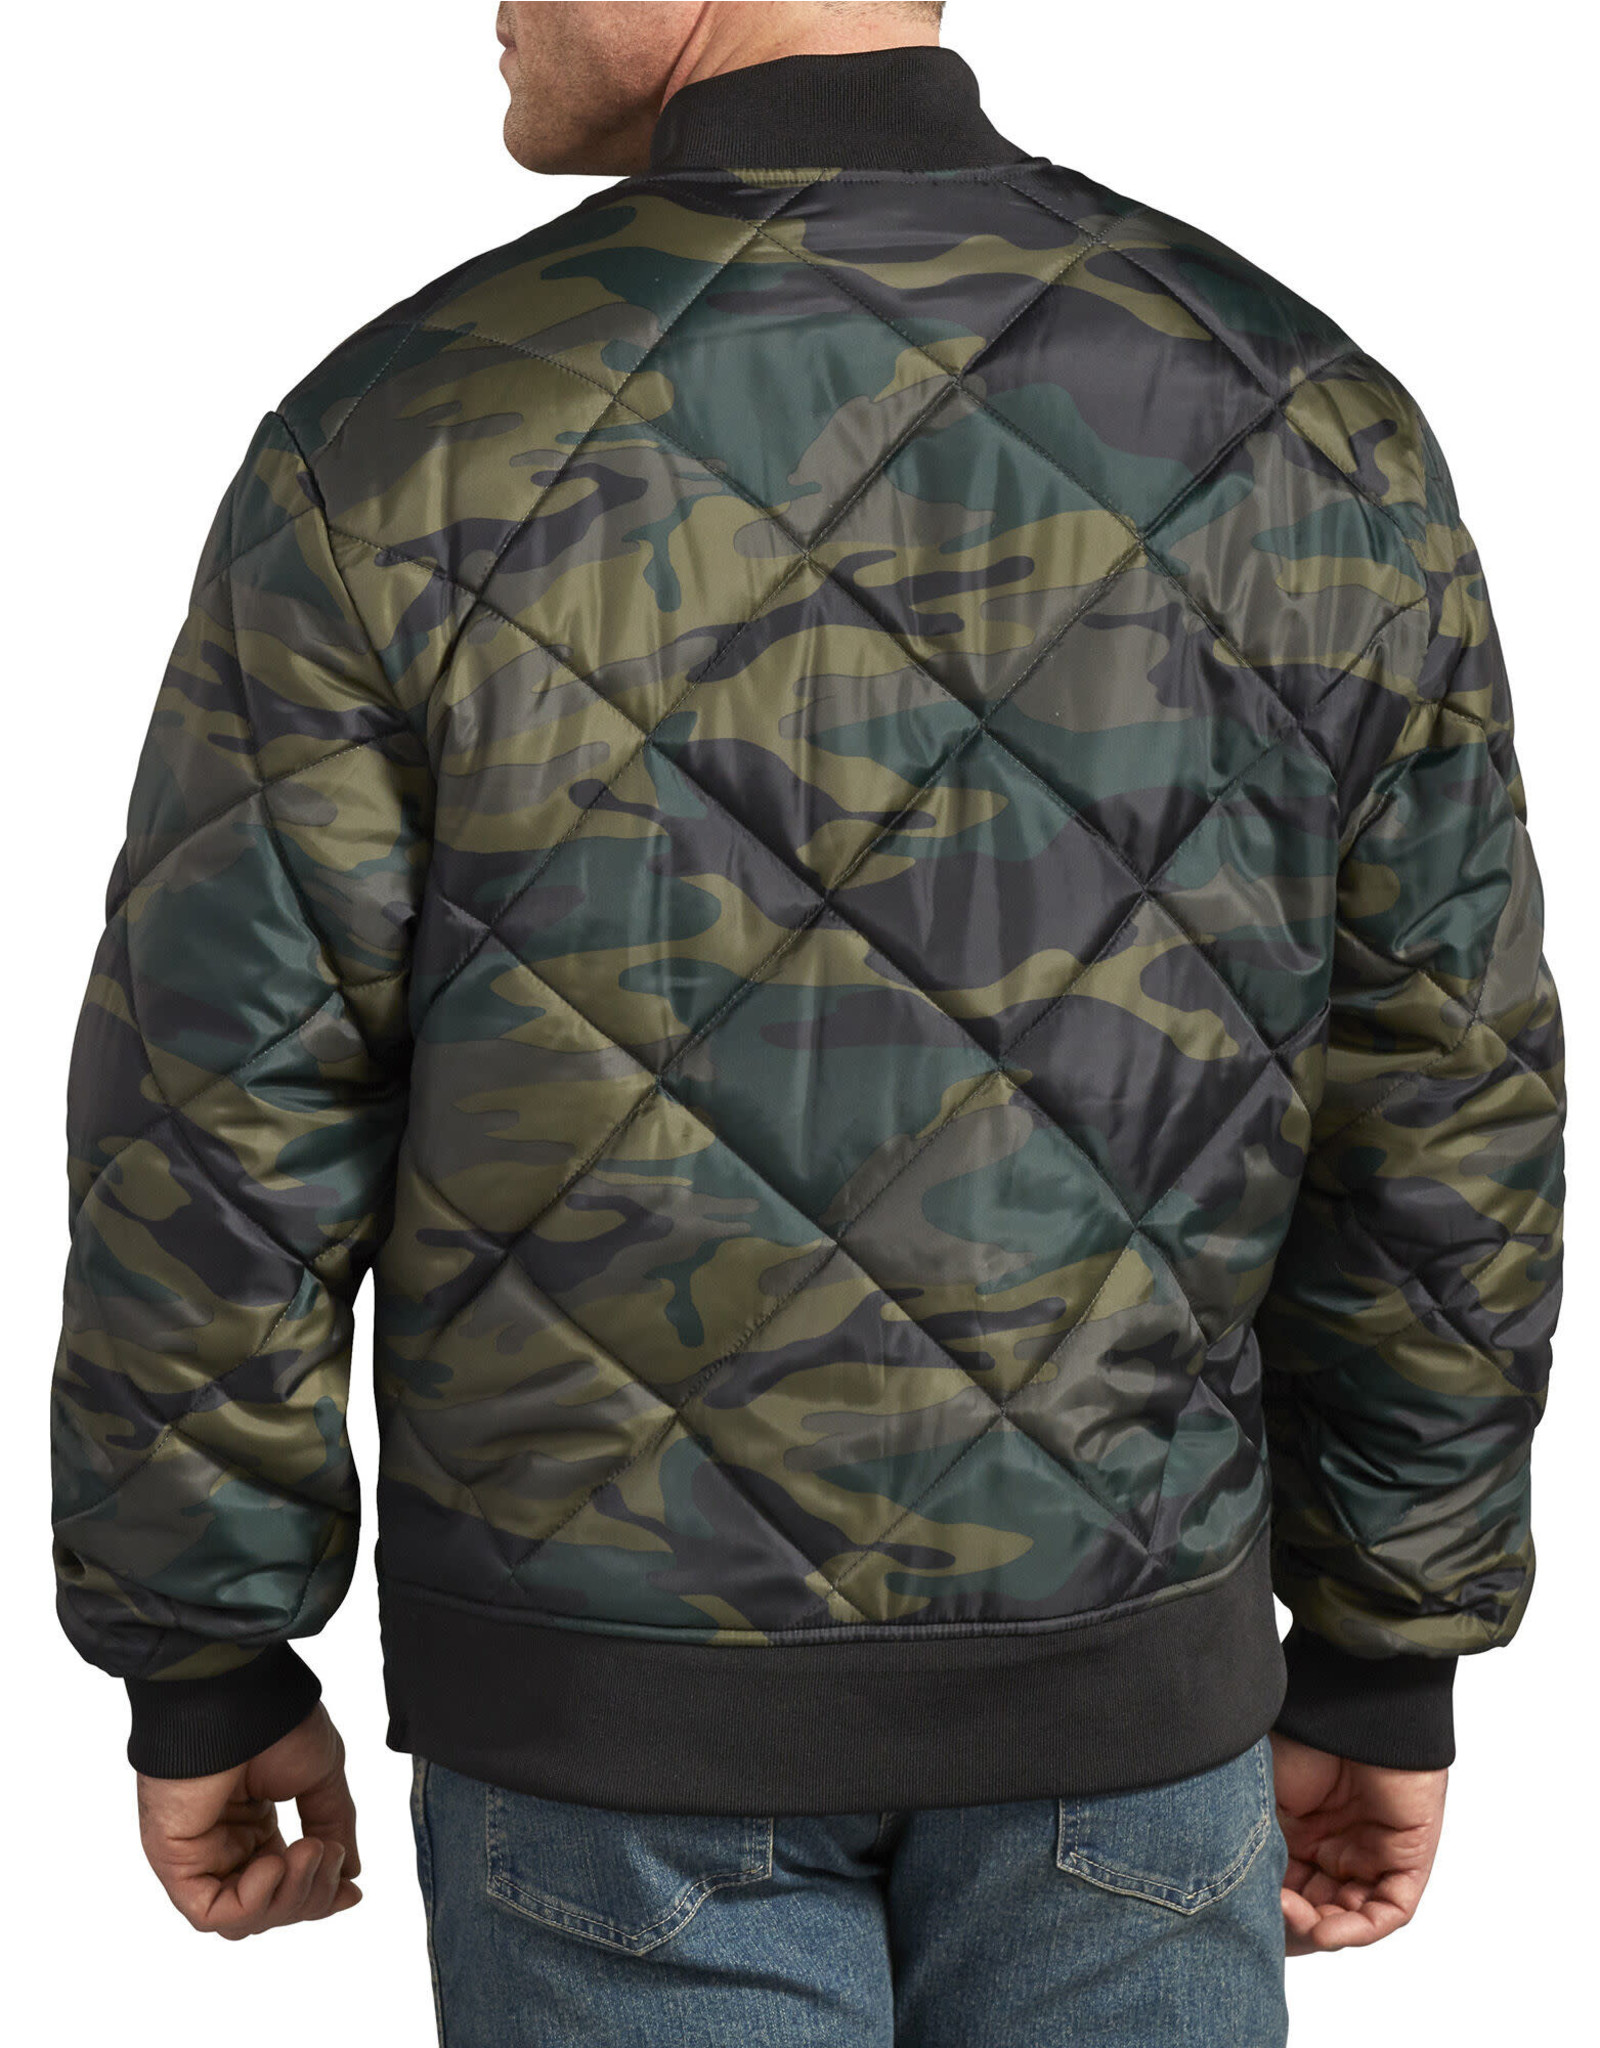 DICKIES Camo Diamond Quilted Jacket